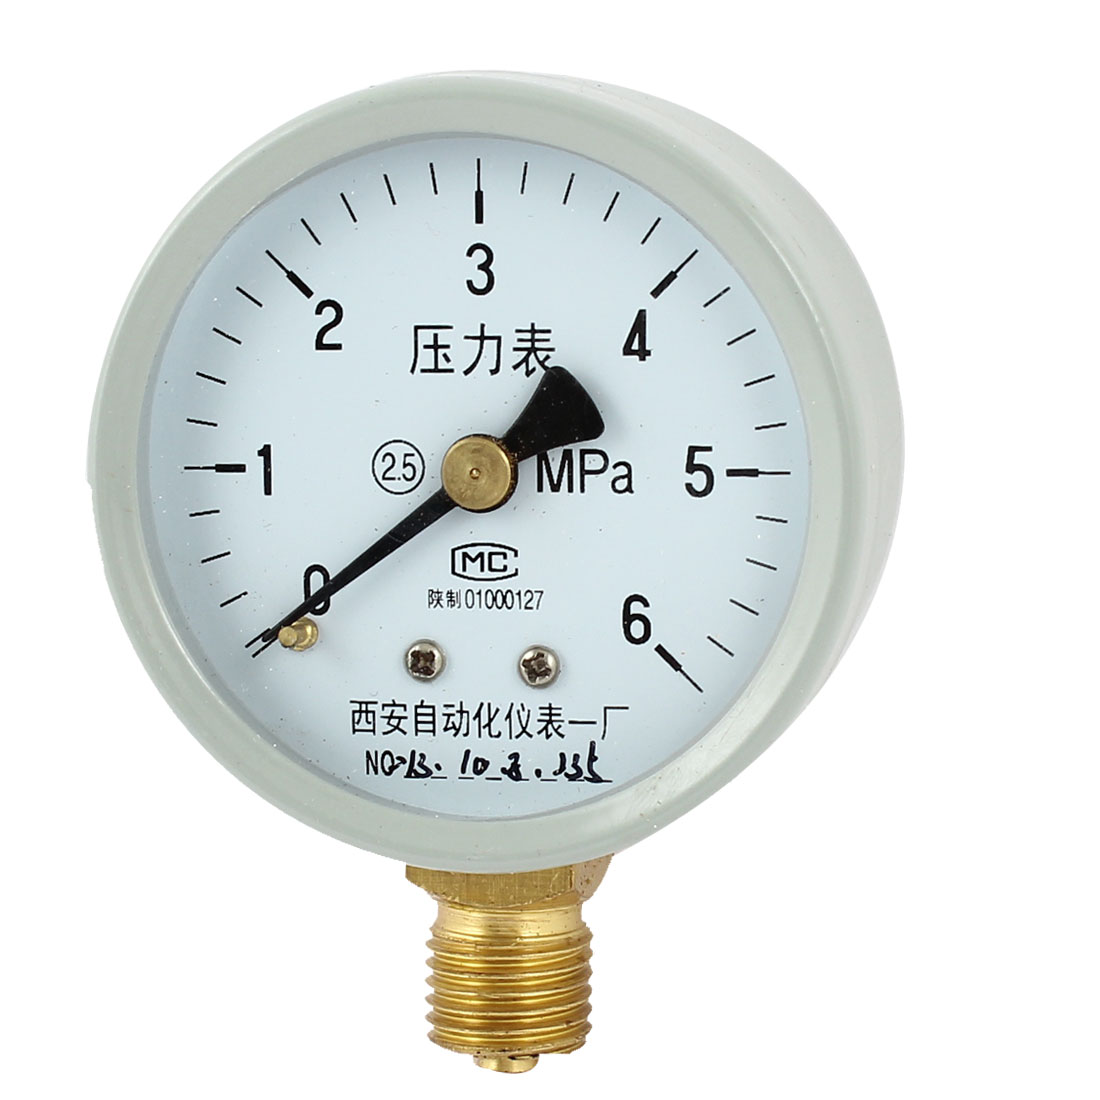 1/4PT Male Threaded 0-6Mpa Pneumatic Air Pressure Measuring Gauge Light Gray